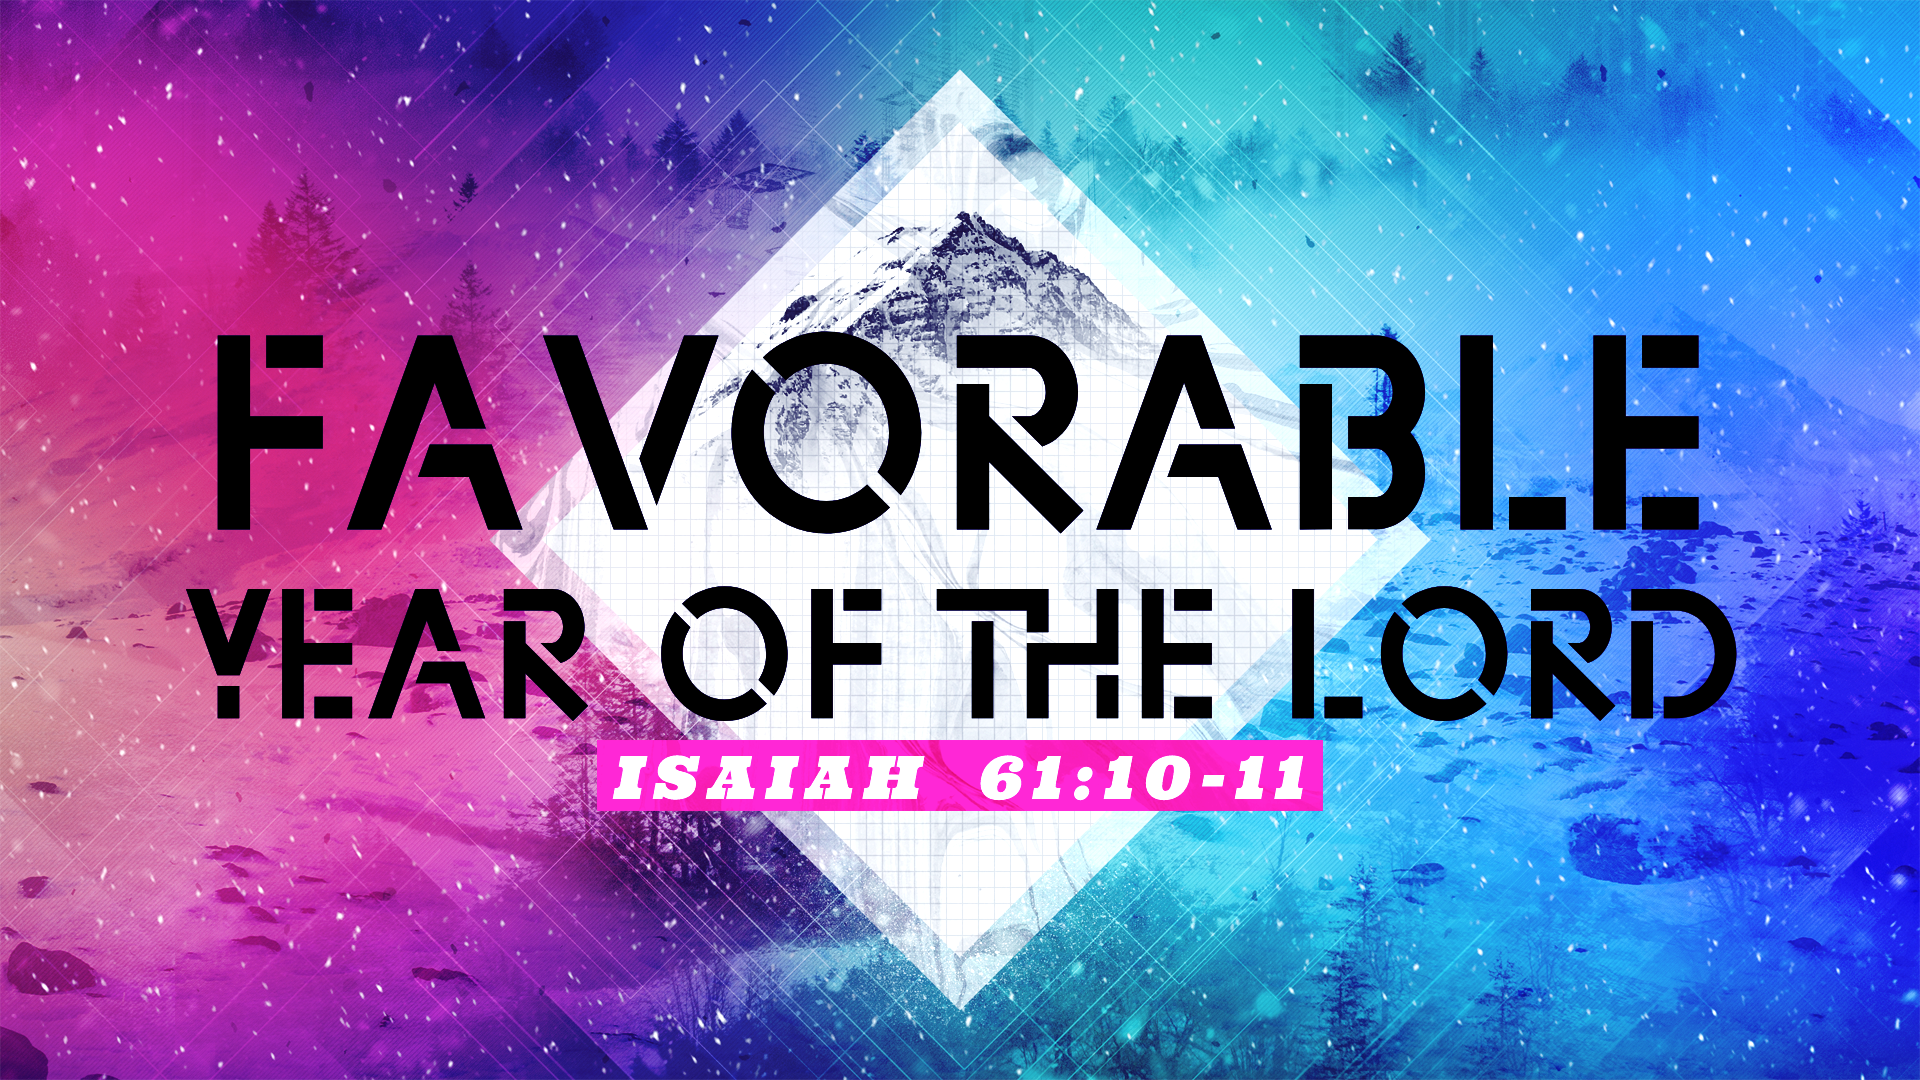 The Favorable Year of the Lord